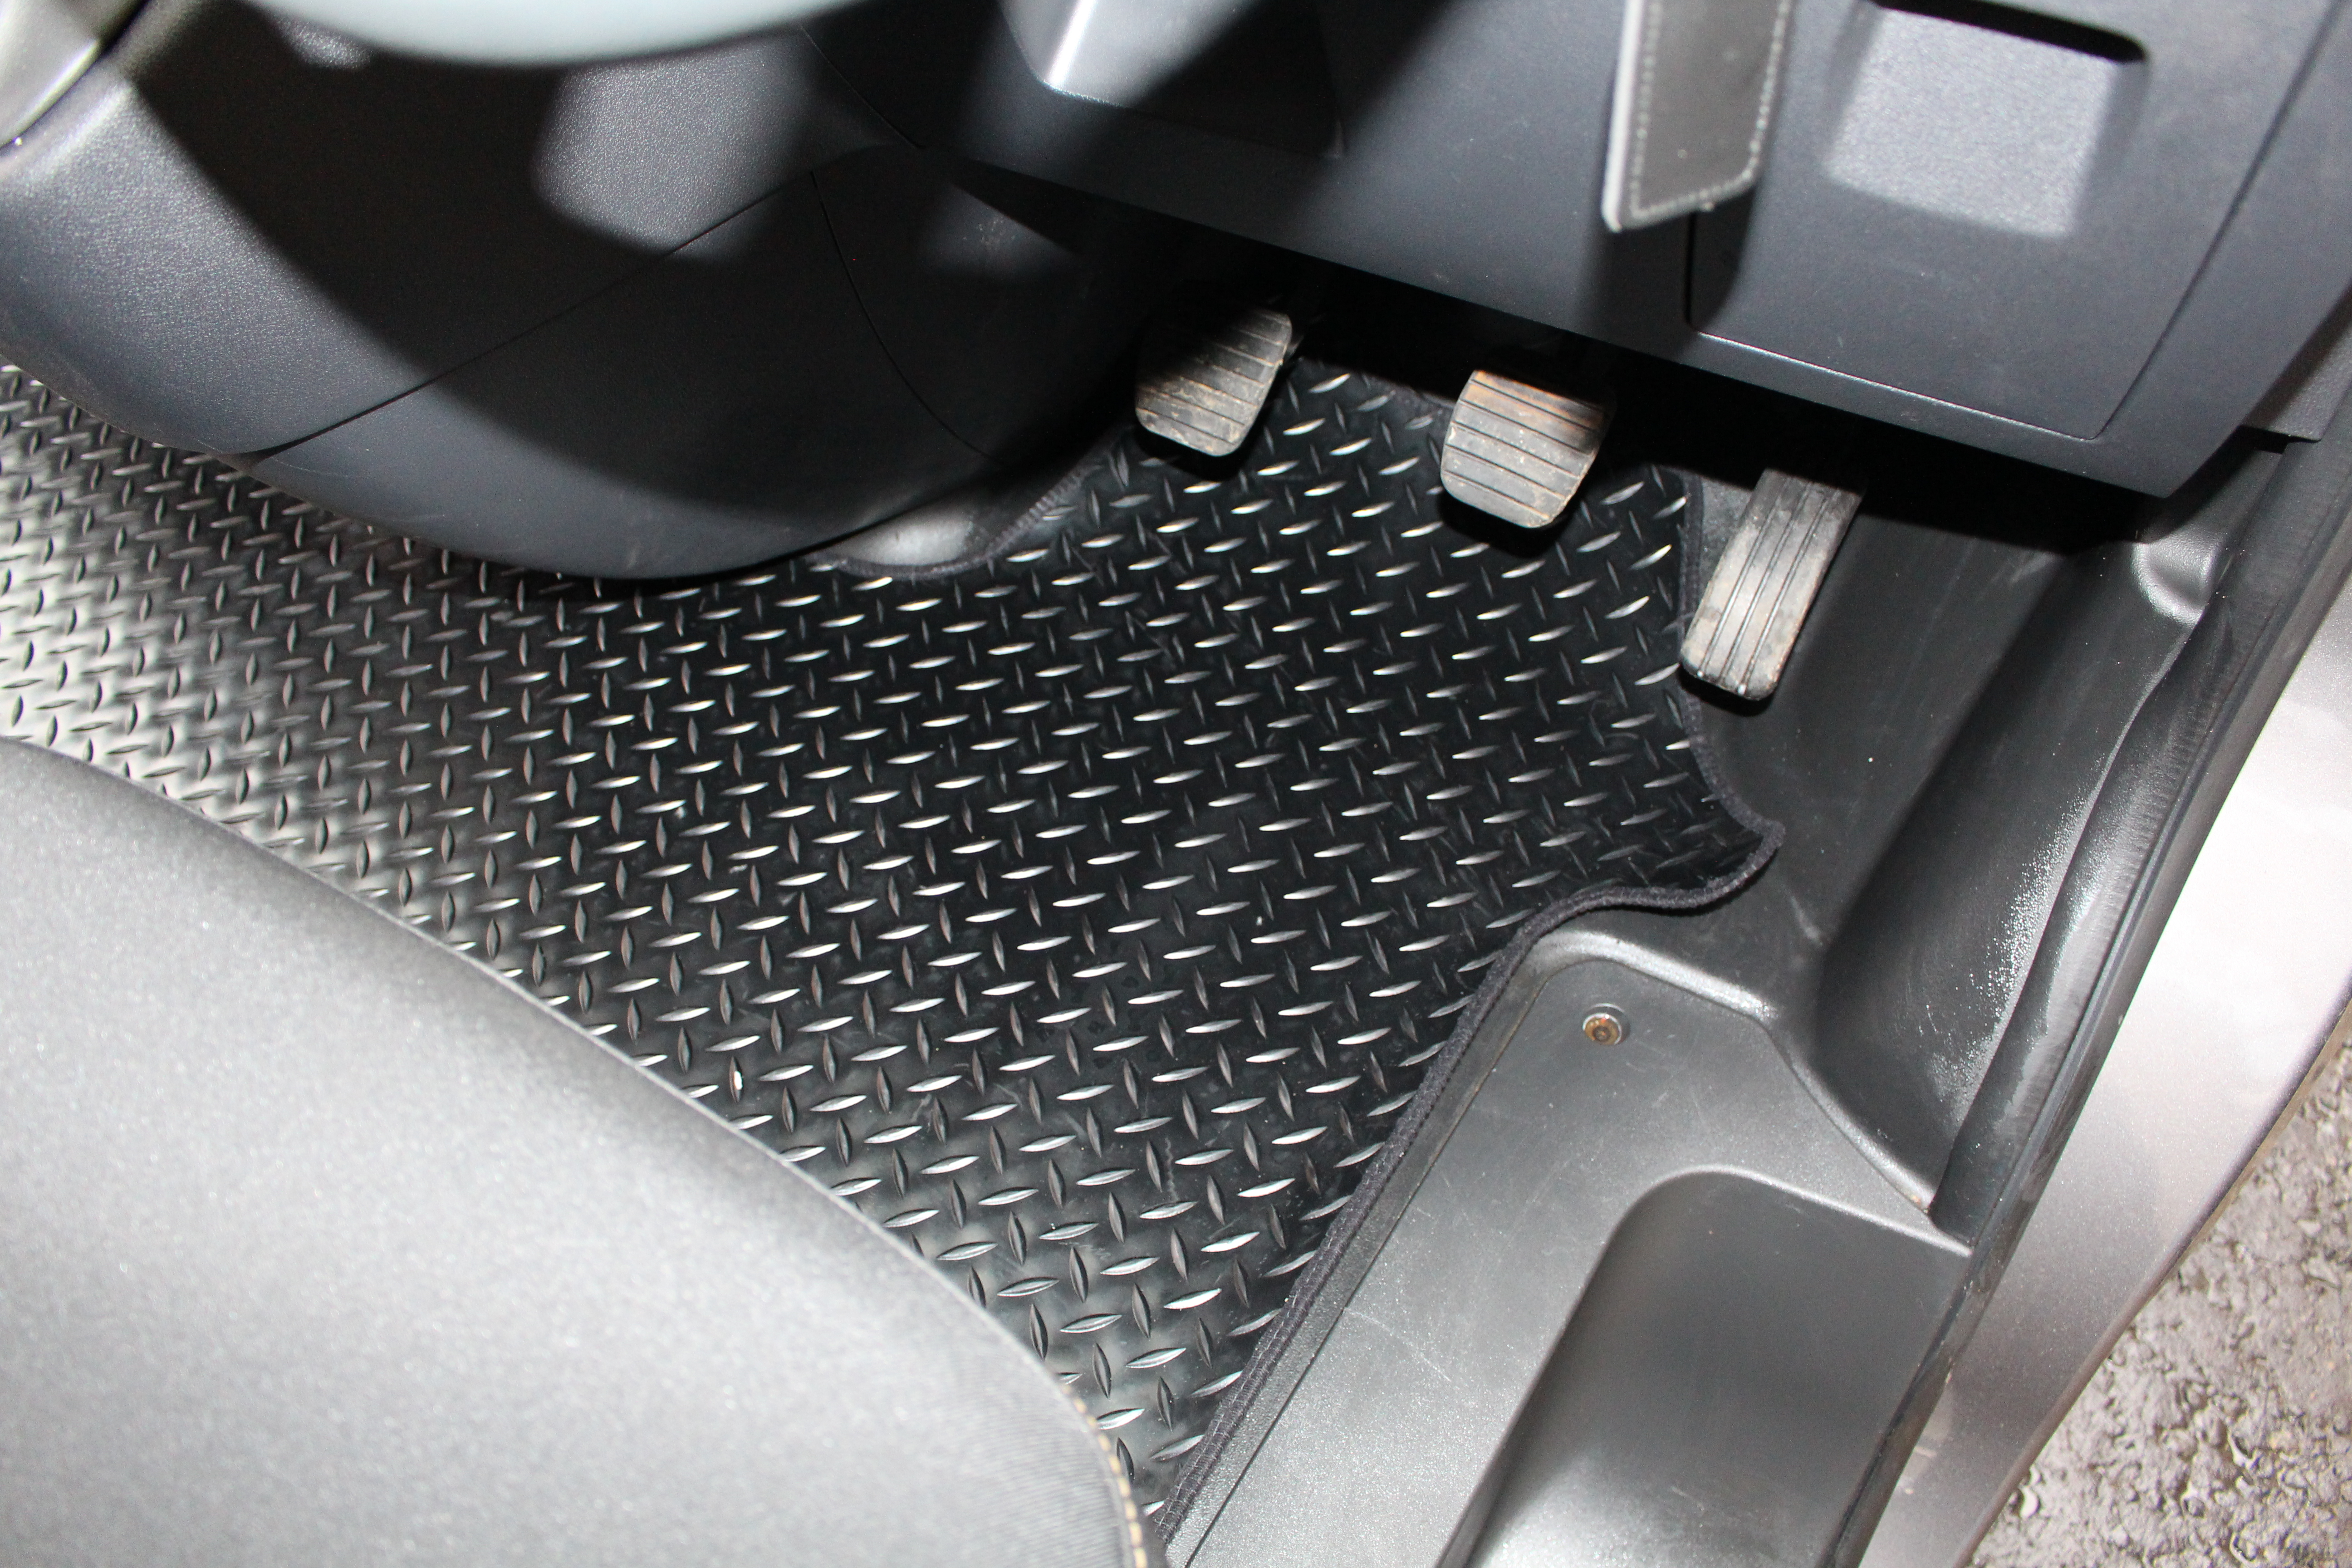 parts weather mats rubber thumbnail honda canada accessories v mat all protection crv includes car package cr floor this